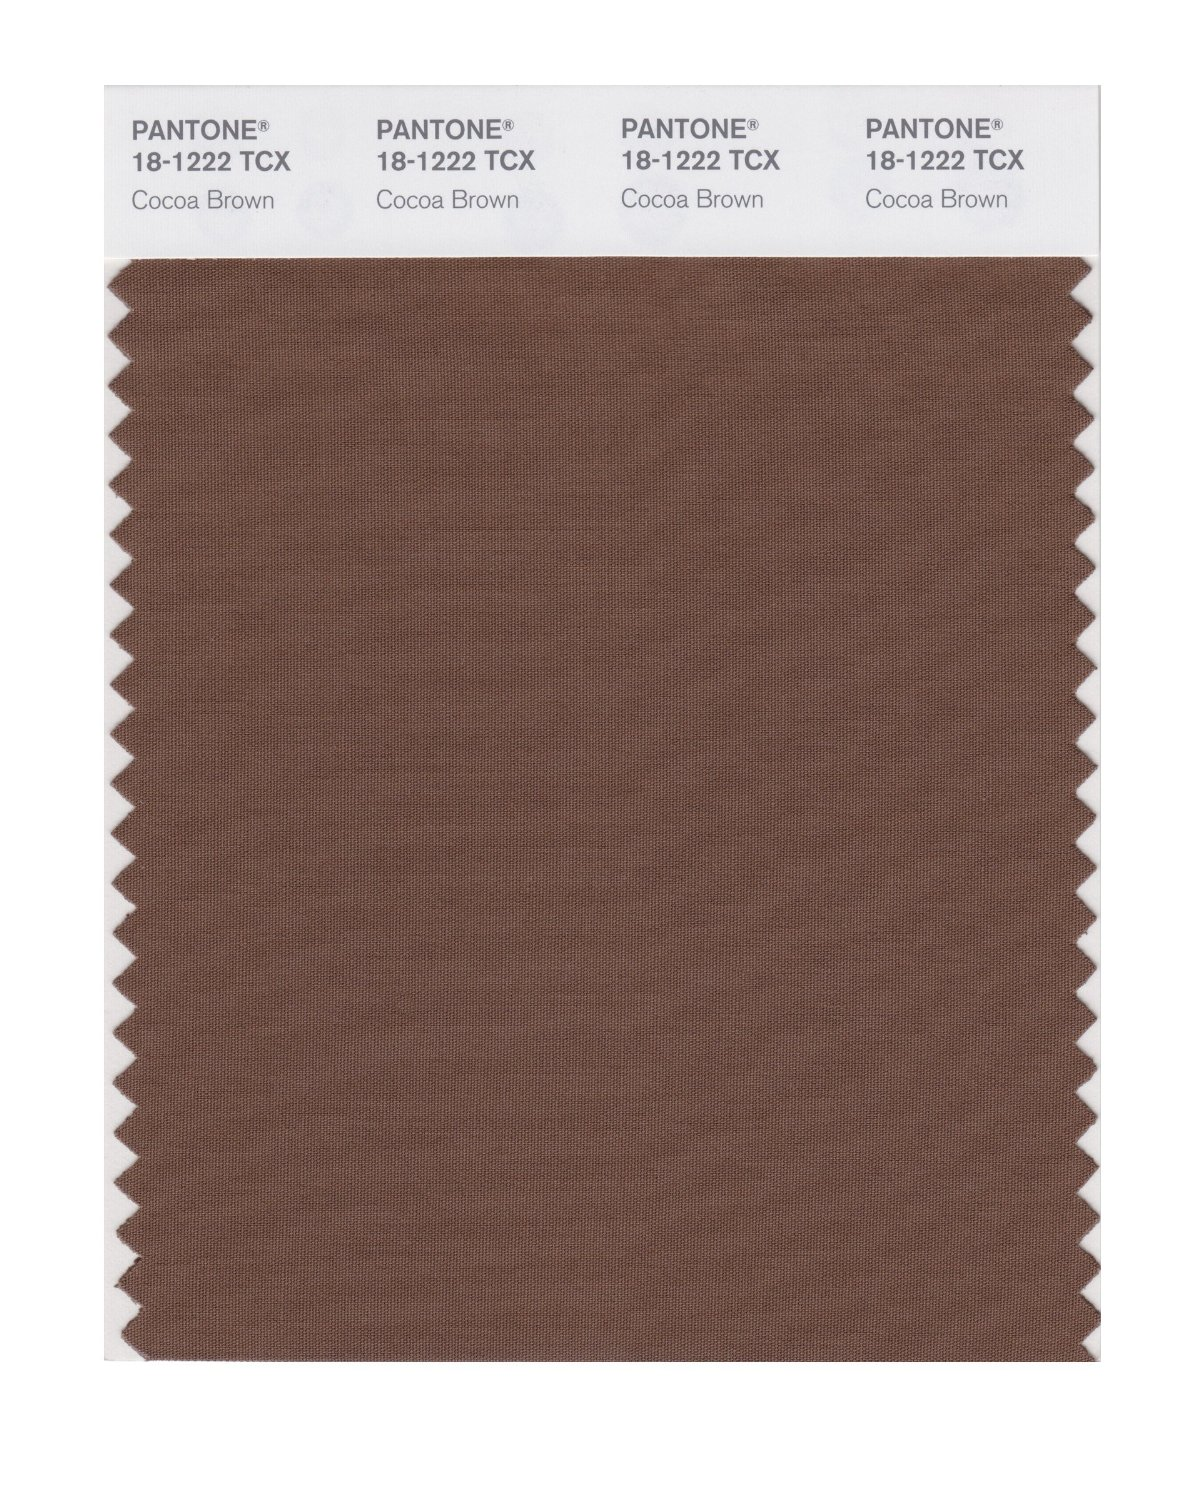 Pantone Smart Swatch 18-1222 Cocoa Brown